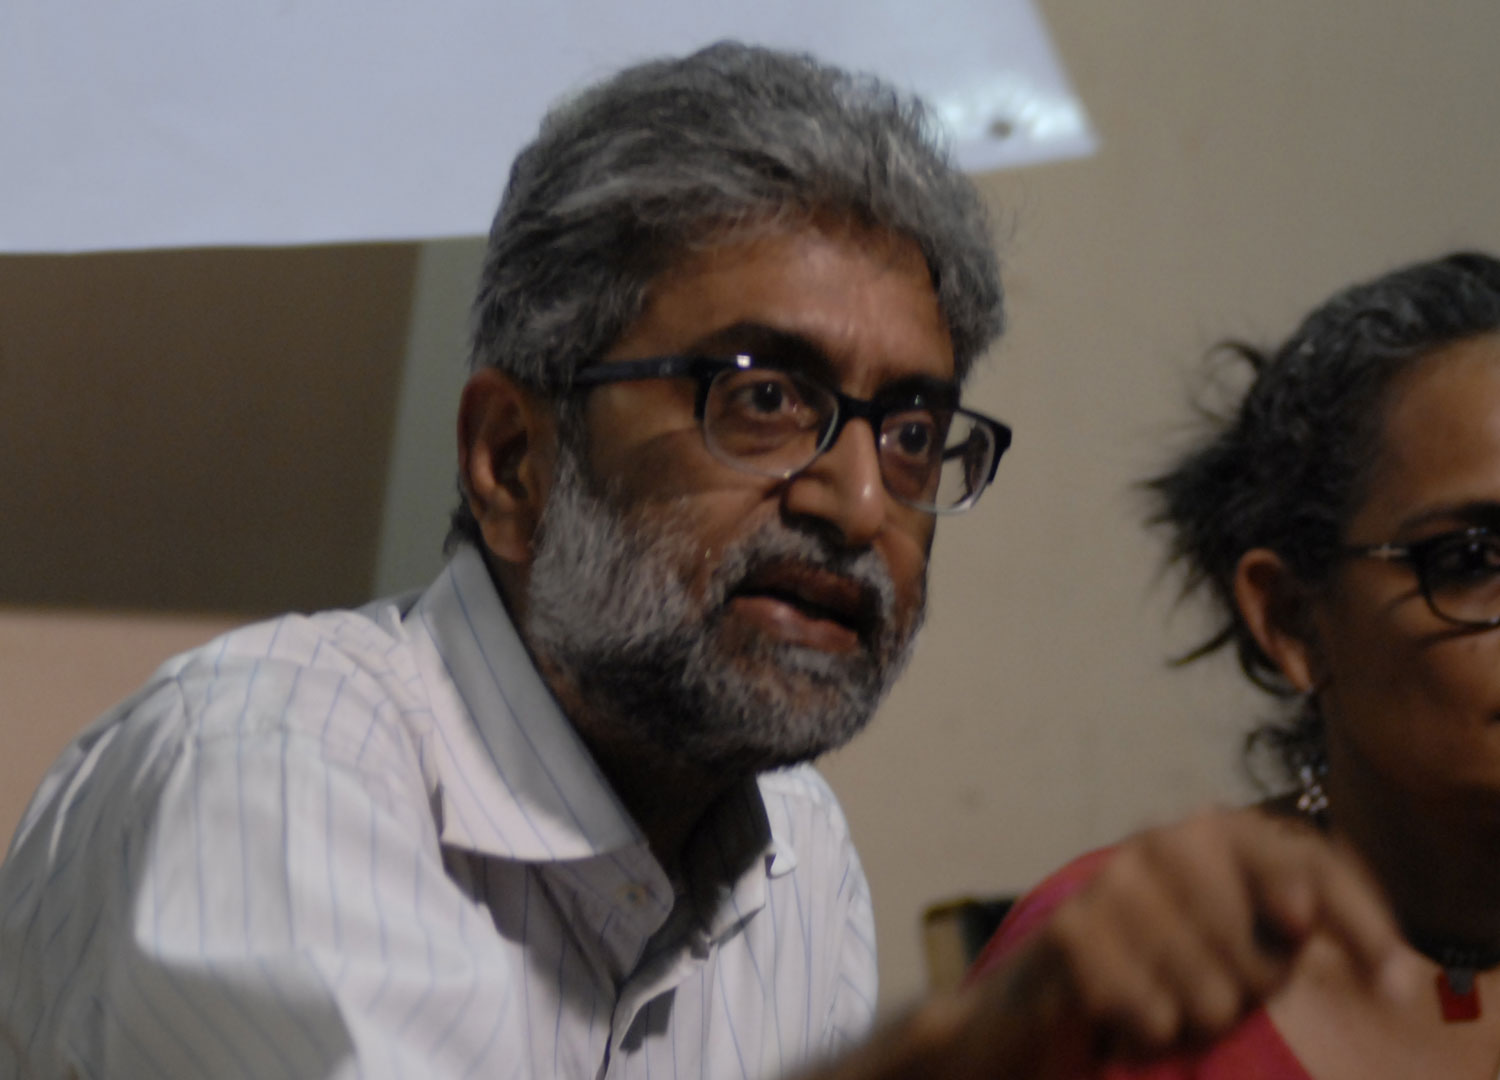 Activist Gautam Navlakha had moved the Supreme Court which granted him interim protection from arrest and said he could seek anticipatory bail from the local court.